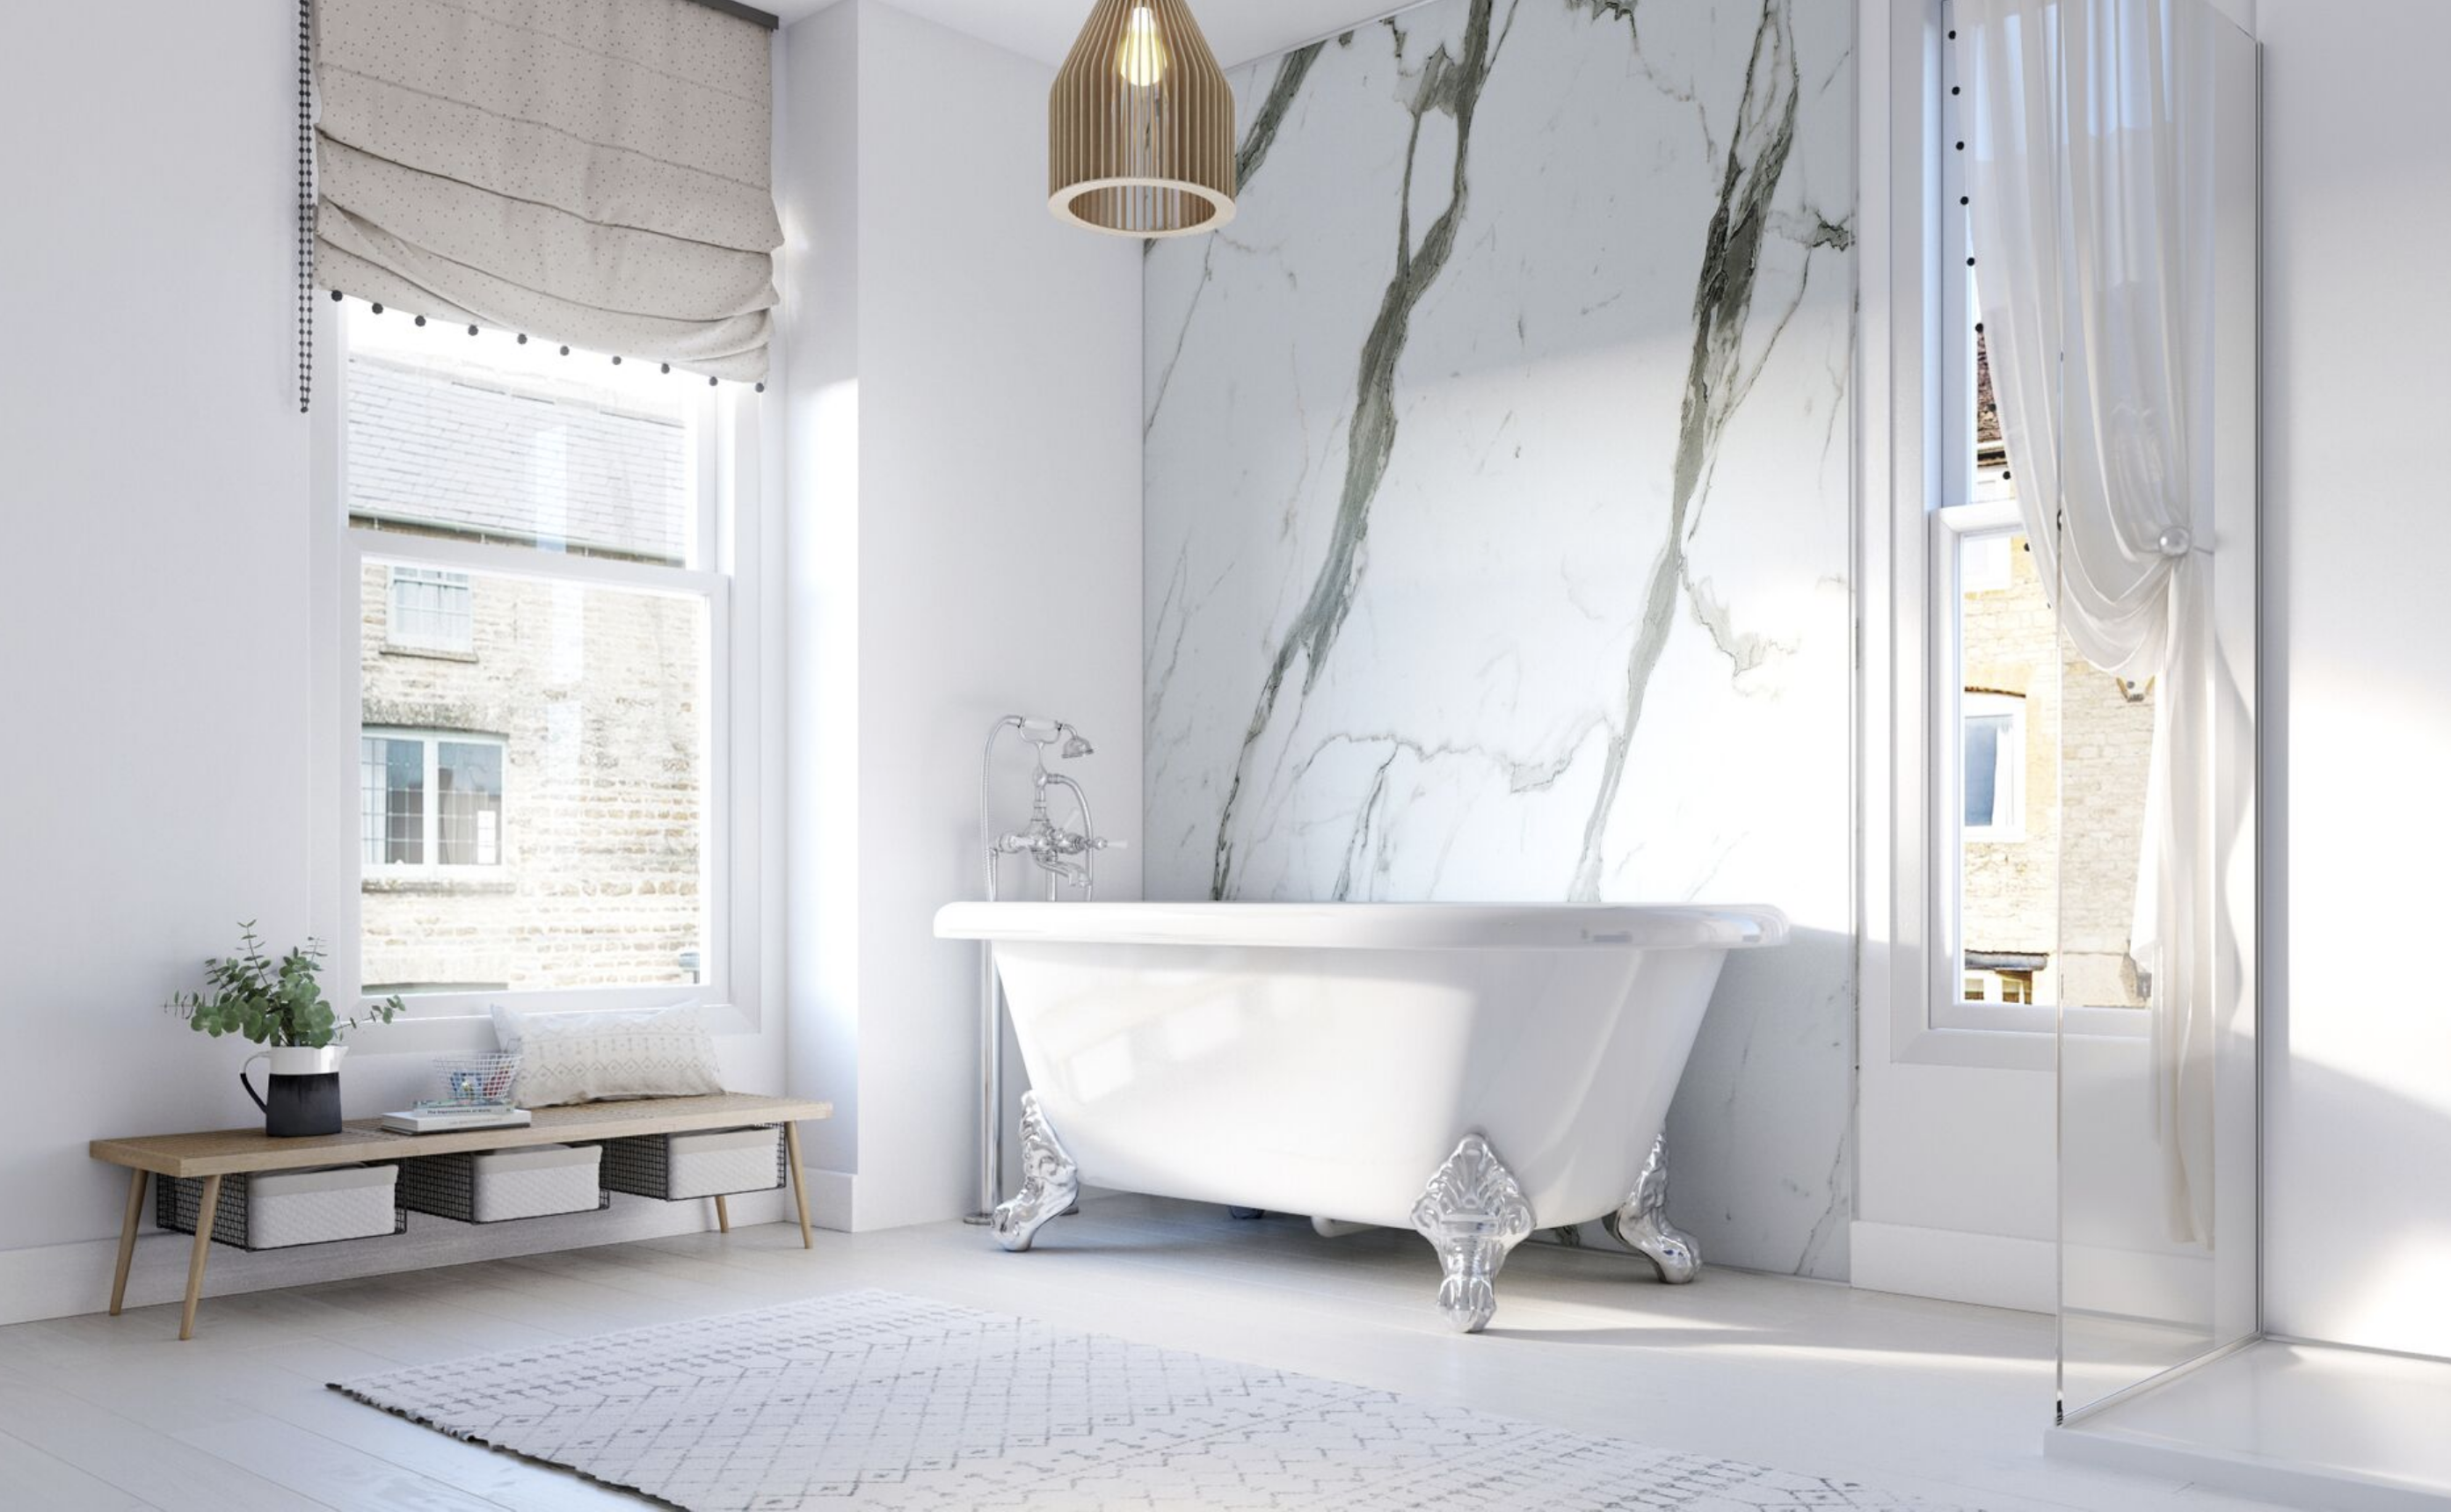 Discover The Biggest Bathroom Trend For 2019 Waterproof Shower Wall Panels Bathroom Wall Panels Shower Wall Panels